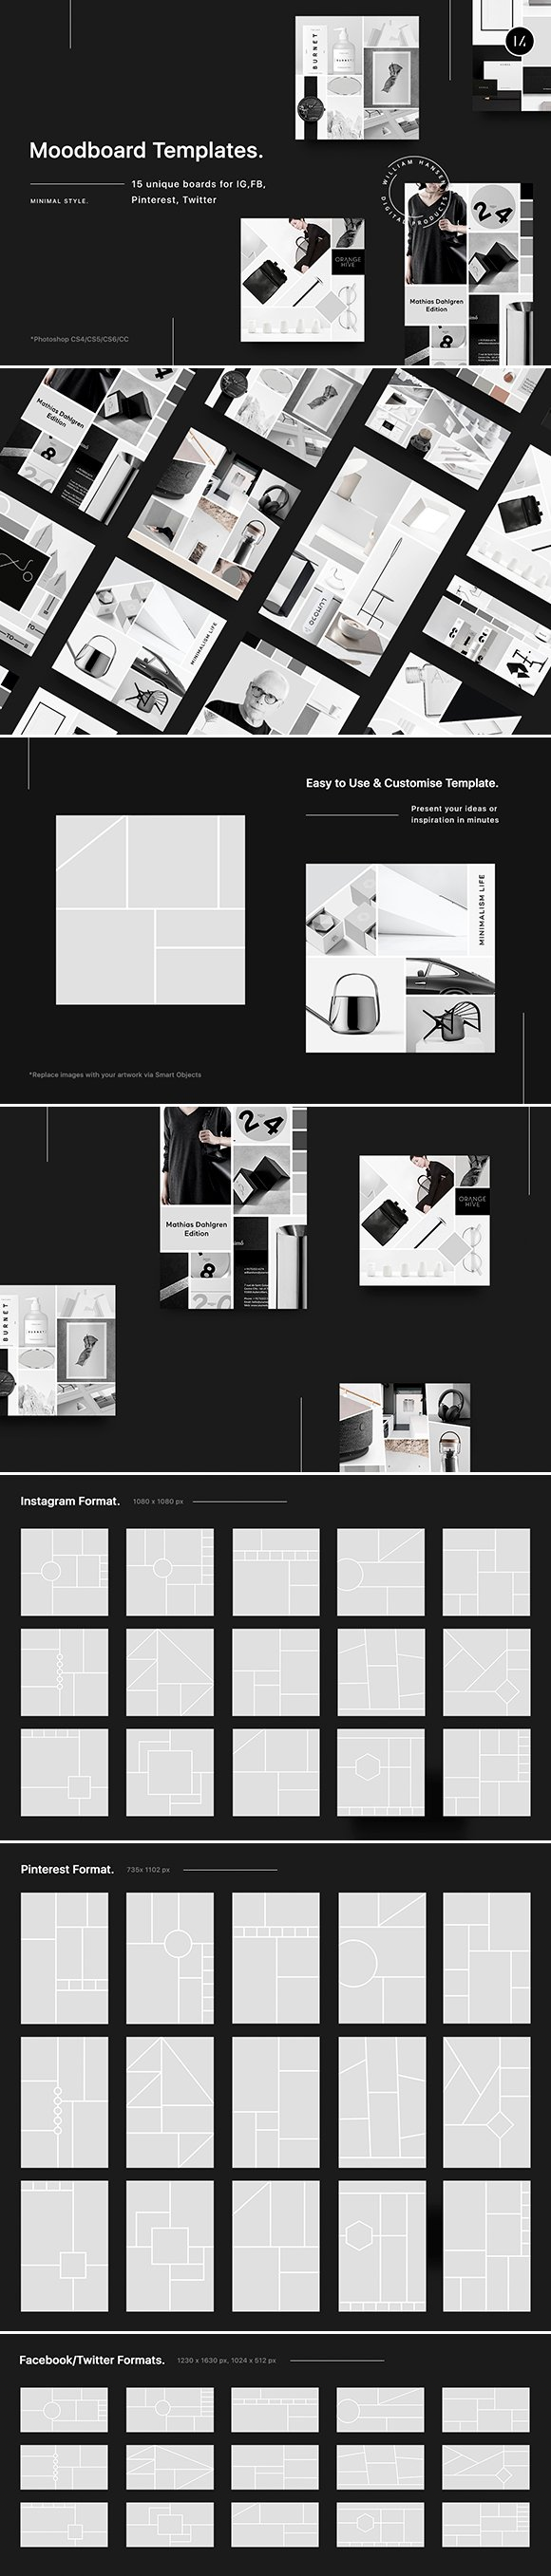 61b2a4f3877 15 Creative Ways to Present Your Mood Boards ~ Creative Market Blog